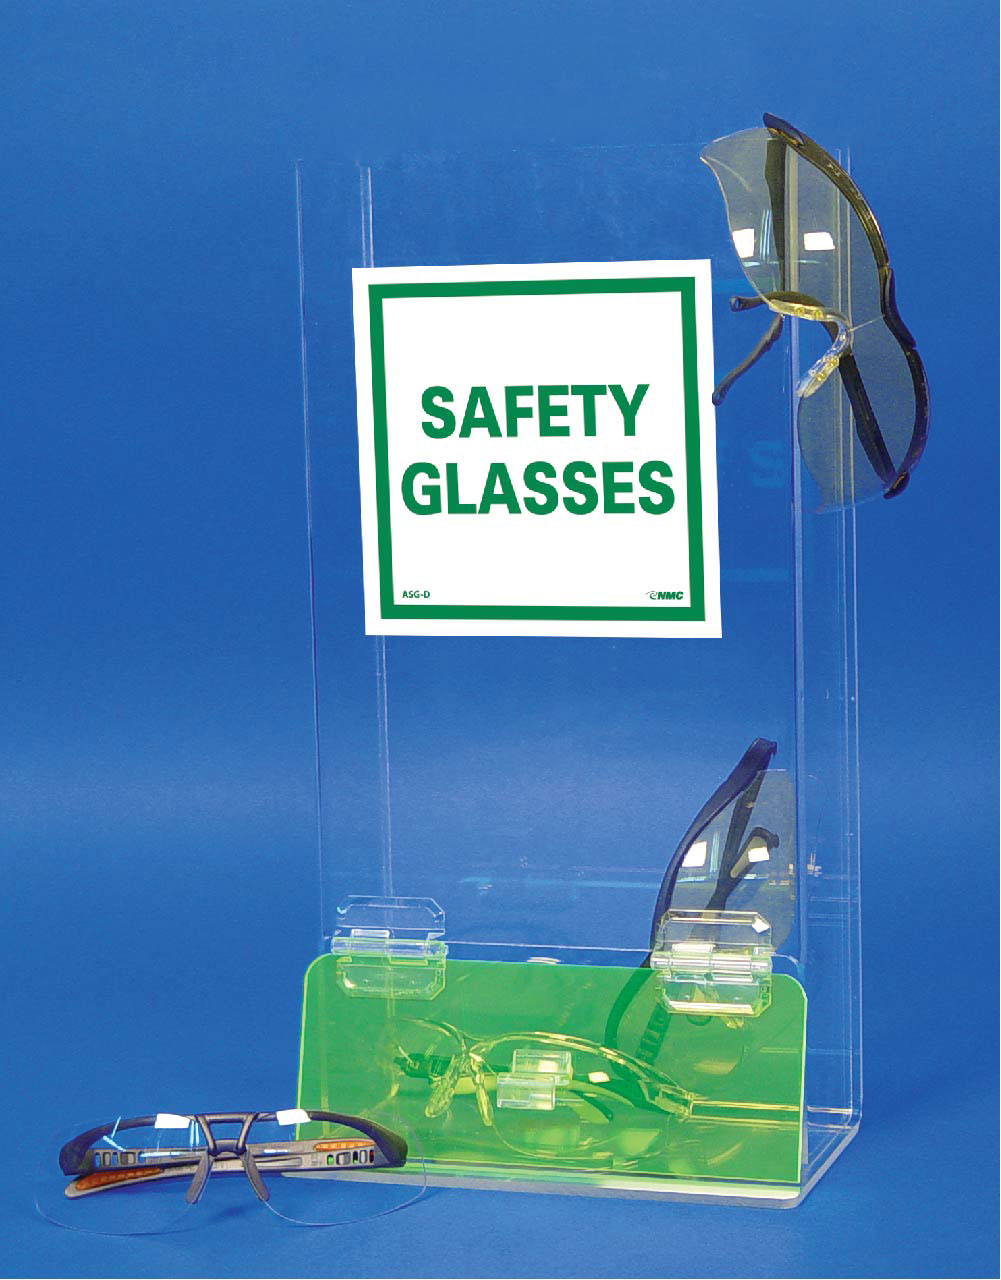 NMC™ ASG-3 Safety Glasses Dispenser, Double Compartment, 15.75 in WD X 16 in HT, Table/Wall Mounting, Acrylic